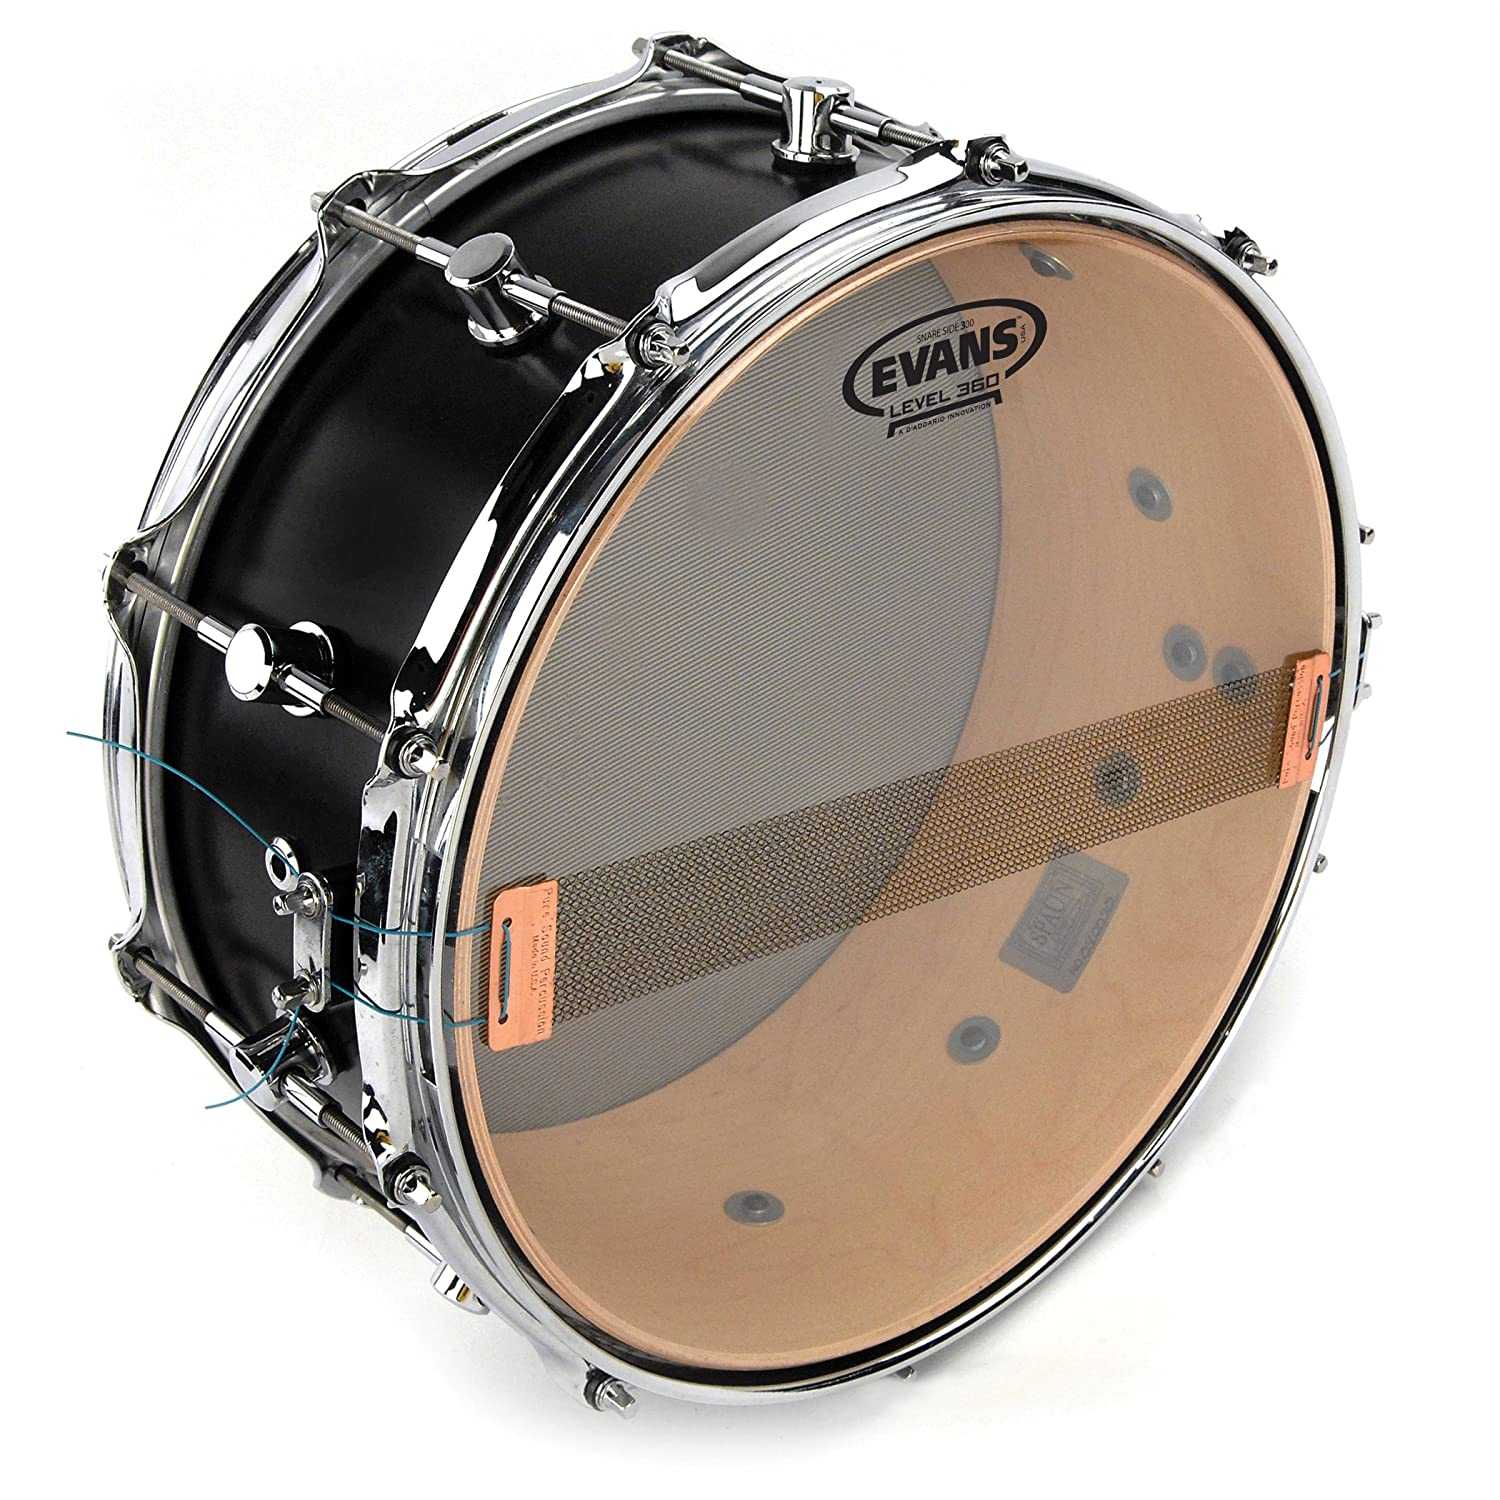 Amazon.com: Evans Clear 300 Snare Side Drum Head, 10 Inch: Musical Instruments